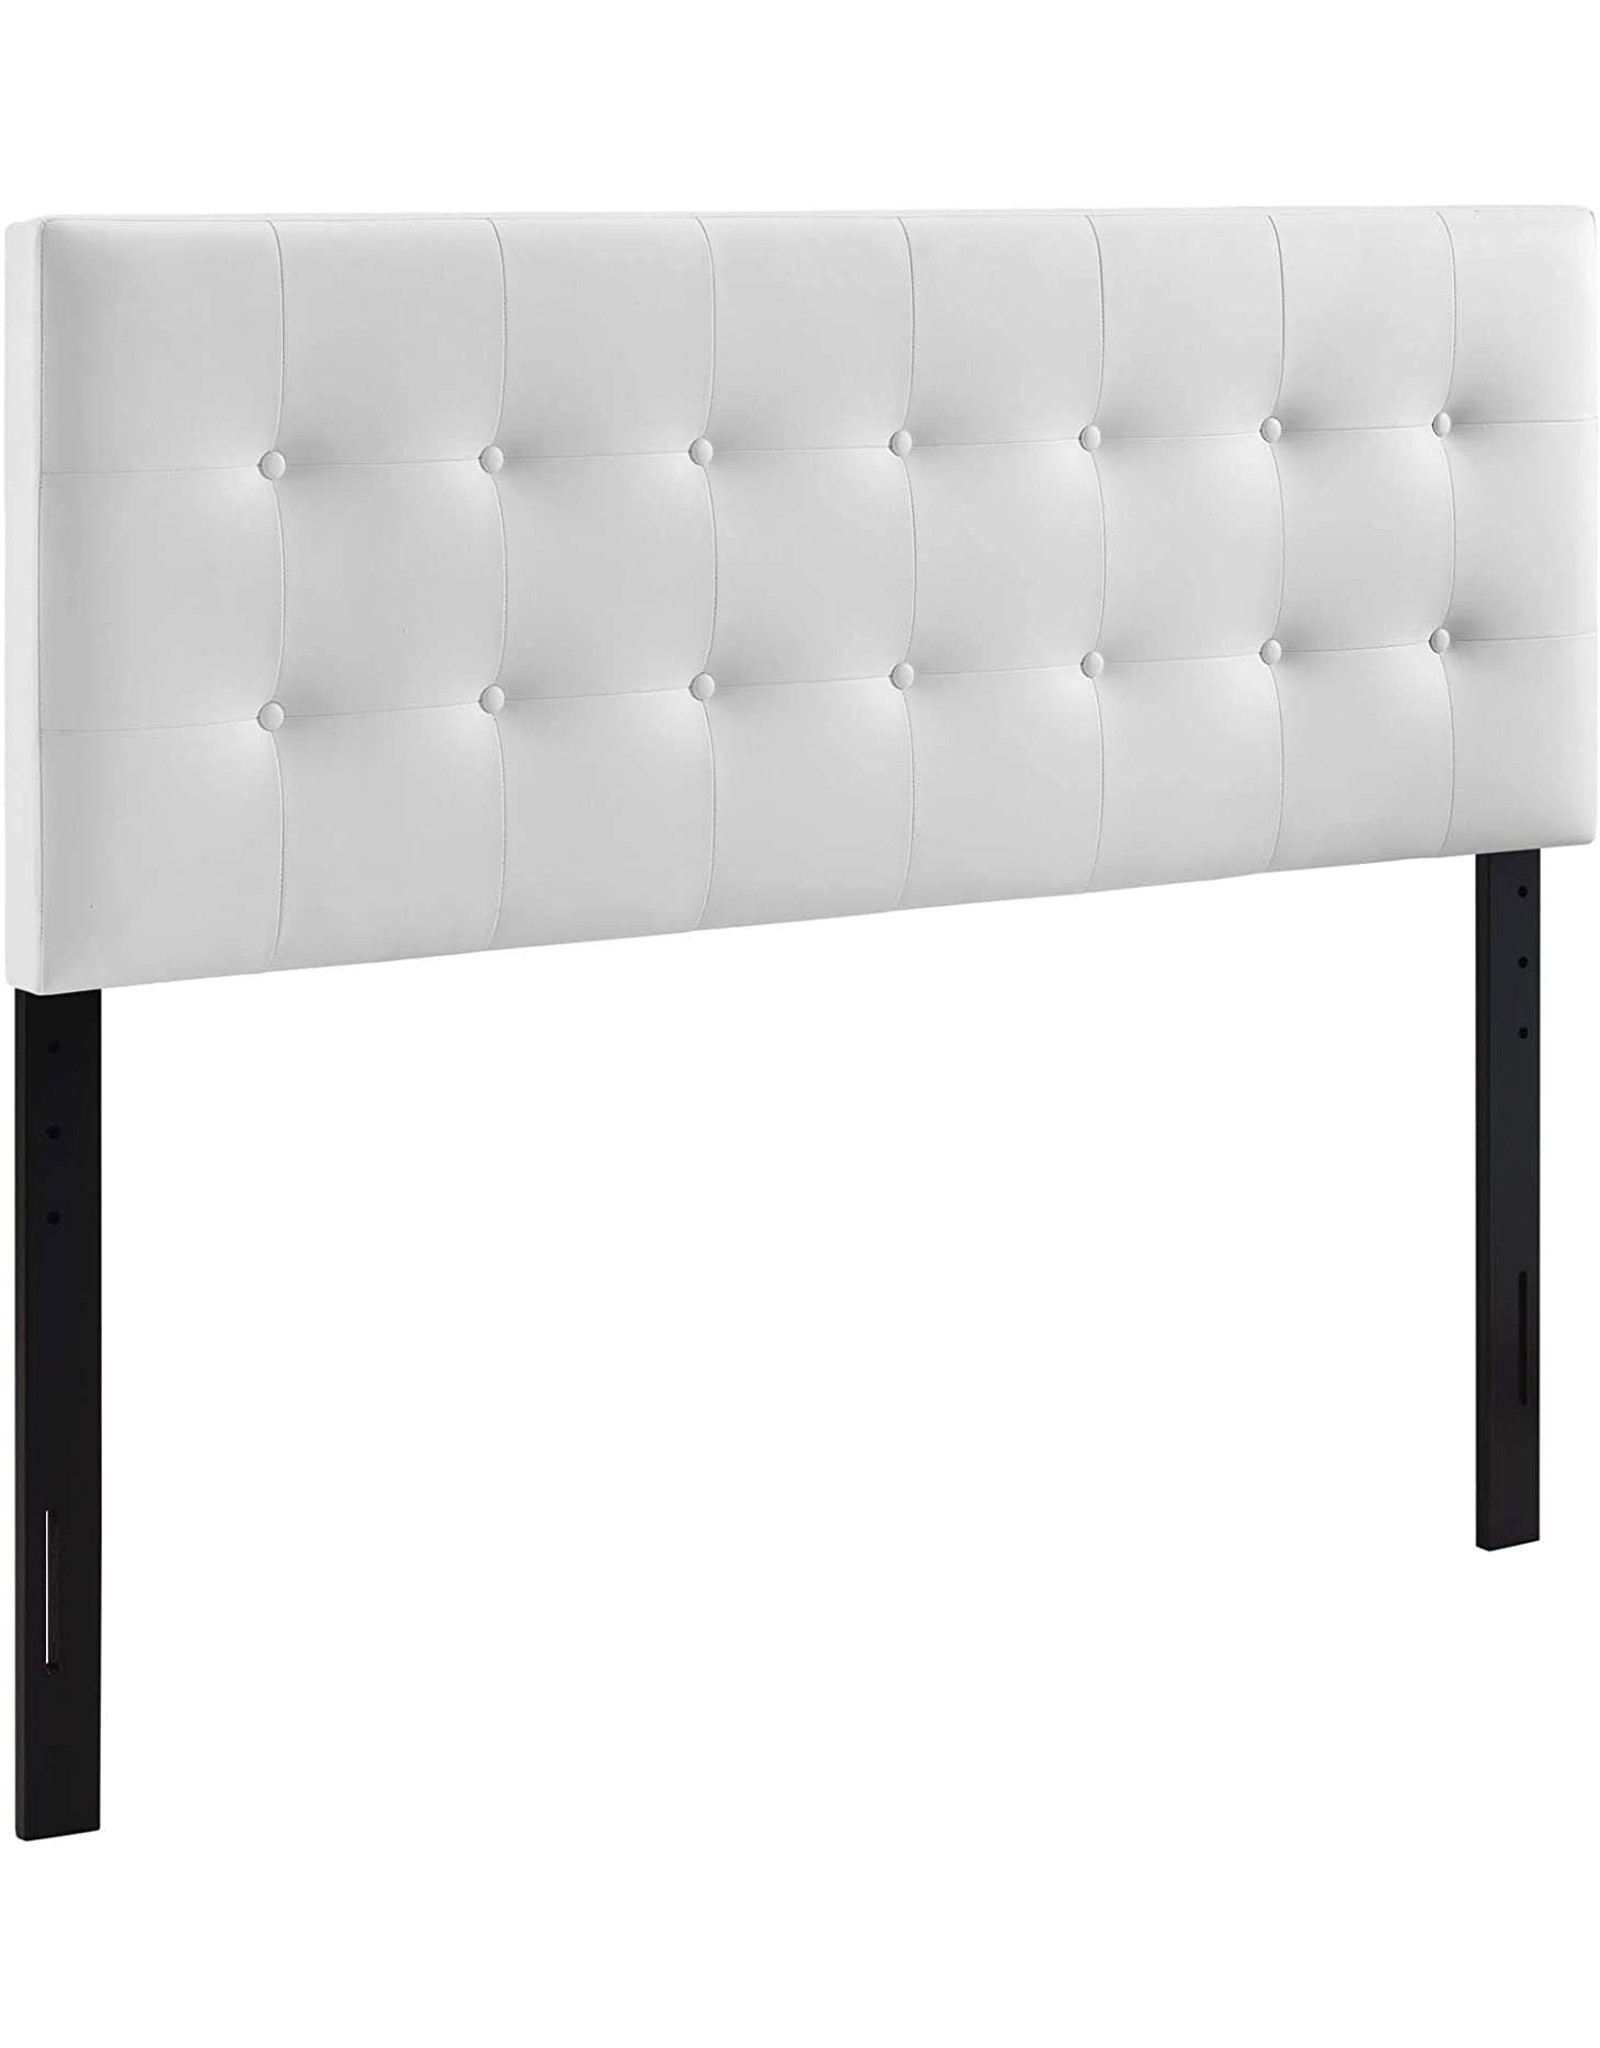 Modway Modway Emily Tufted Button Faux Leather Upholstered King Headboard in White